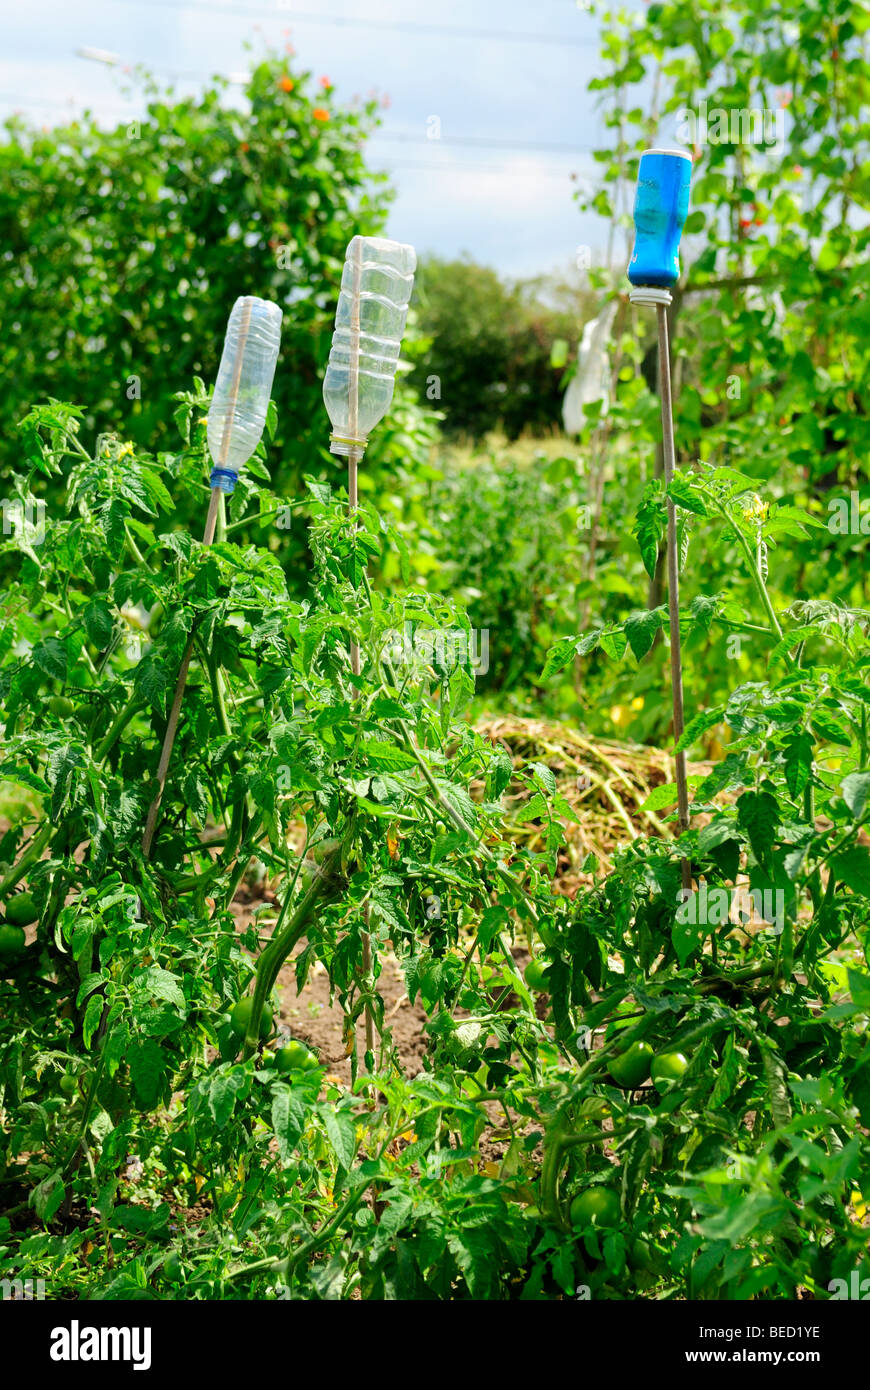 Empty Plastic Water Bottles used for Proctection by Gardeners against Sharp Bamboo Canes- August 2009 - Stock Image